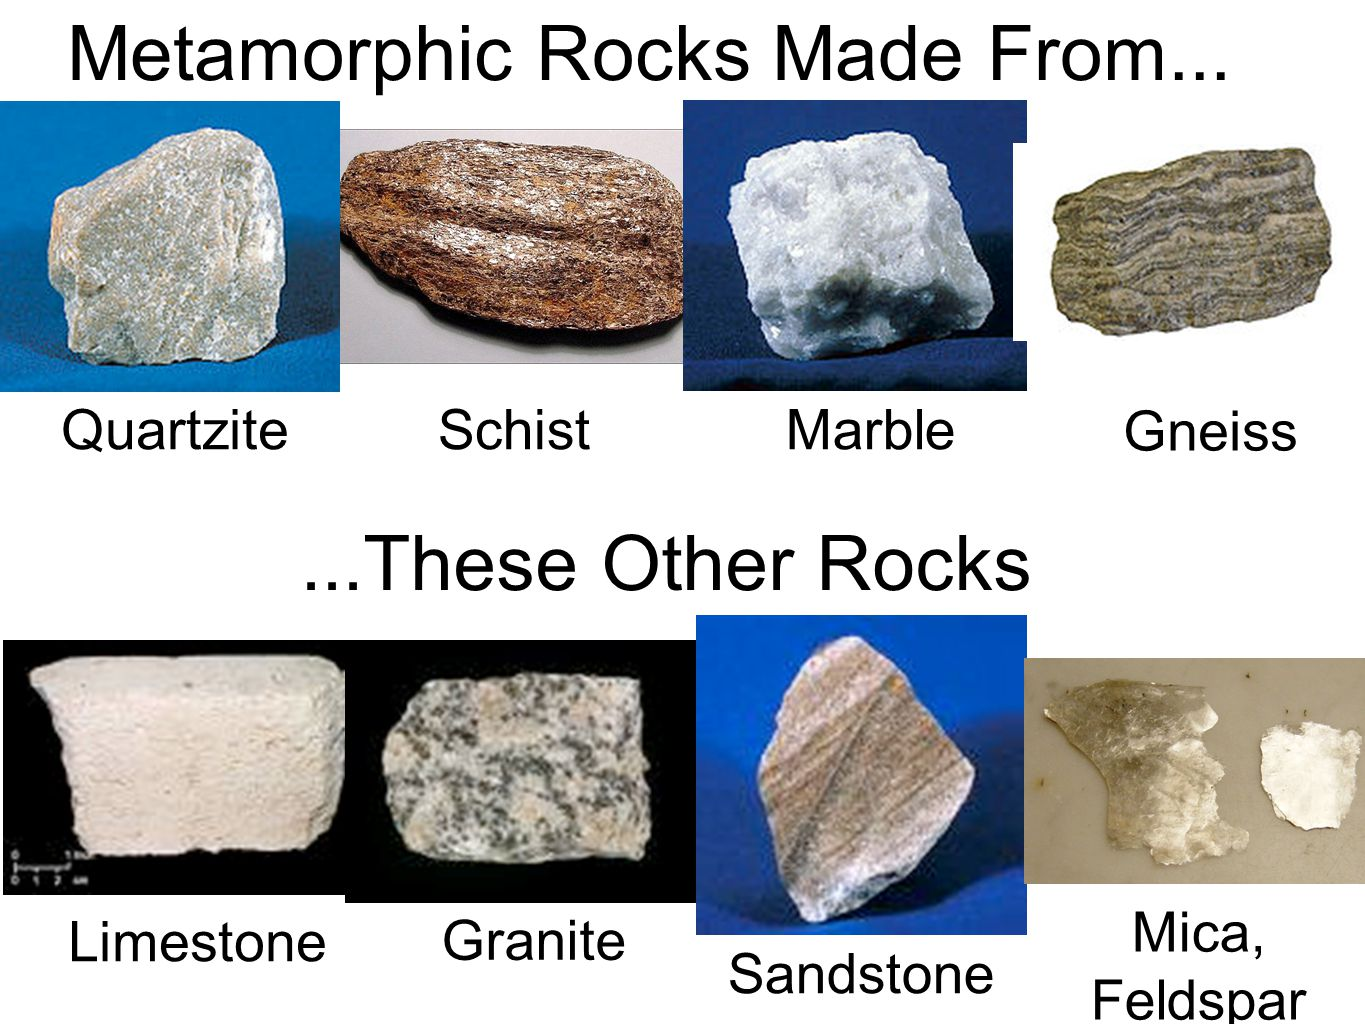 Quartzite Schist Marble Gneiss Sandstone Mica, Feldspar Limestone Granite Metamorphic Rocks Made From......These Other Rocks